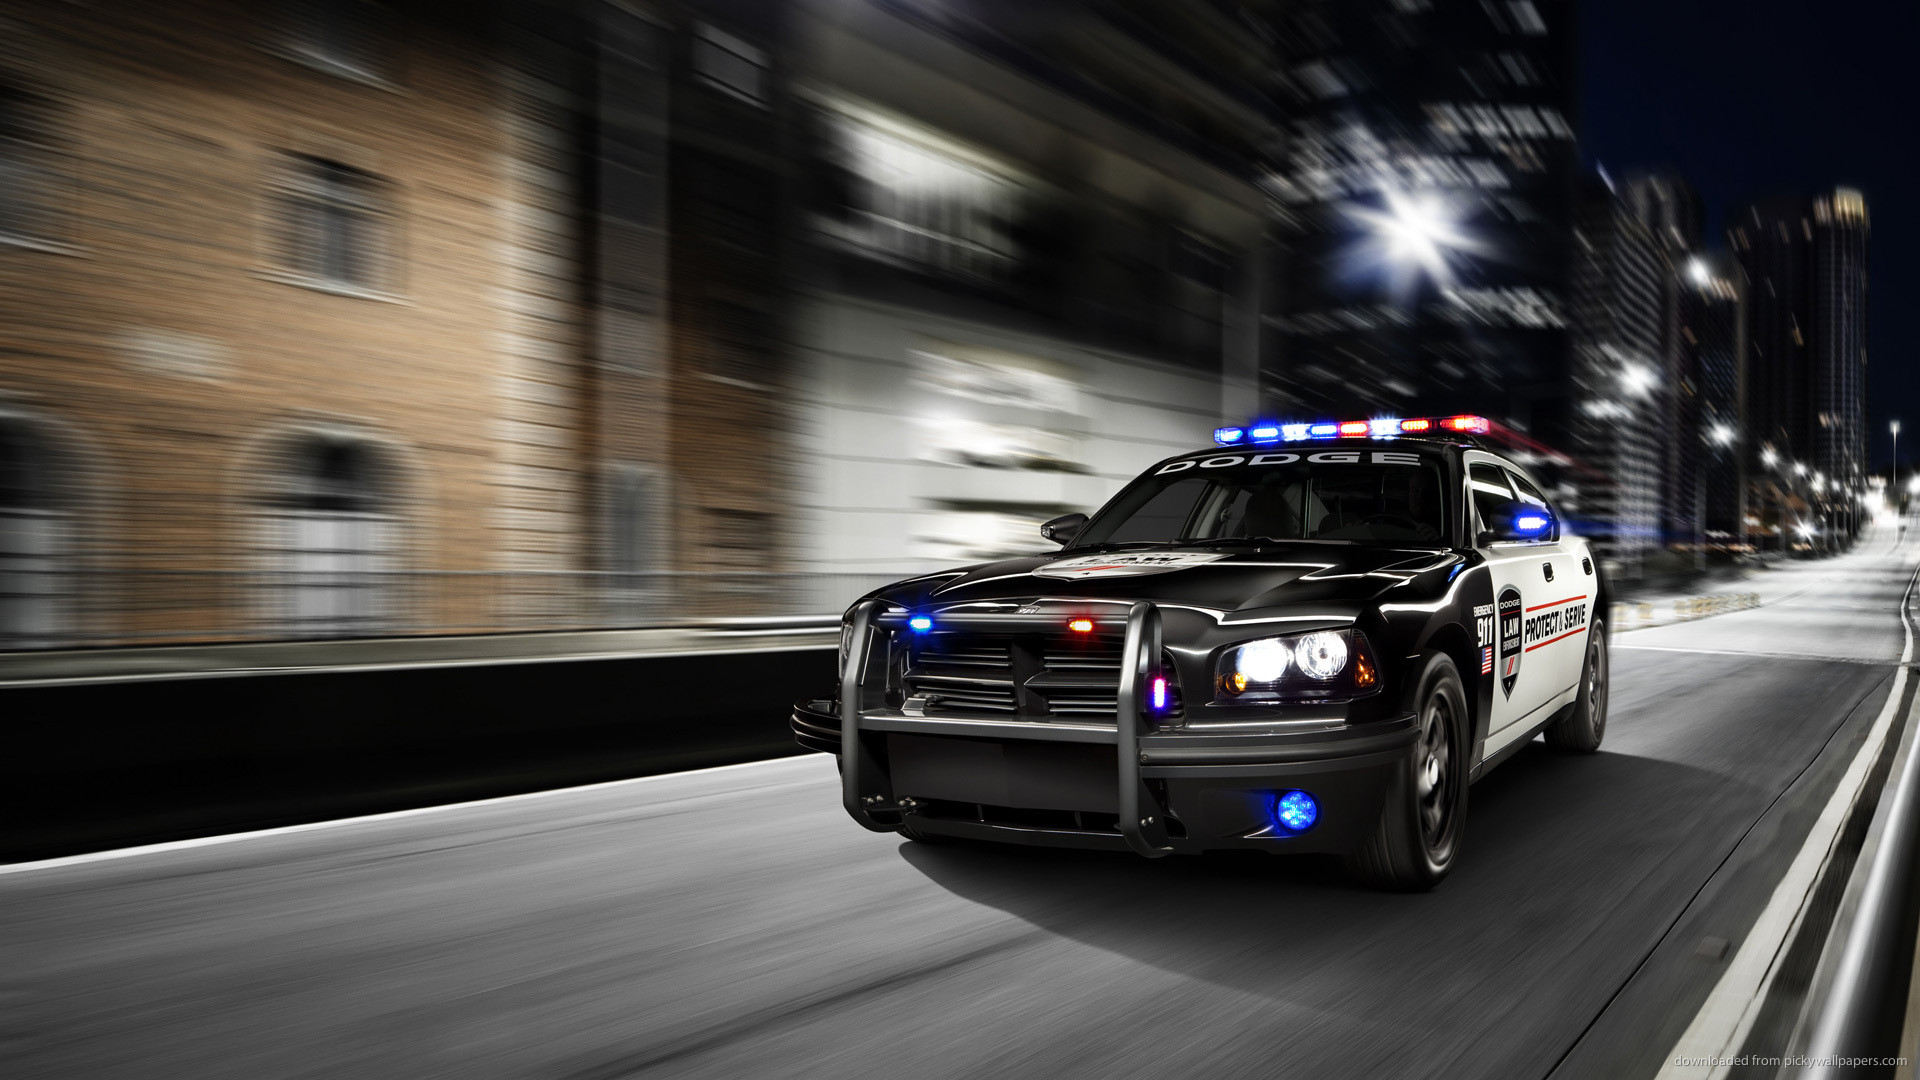 dodge, police, charger, wallpapers, twitter, cars, wallpaper